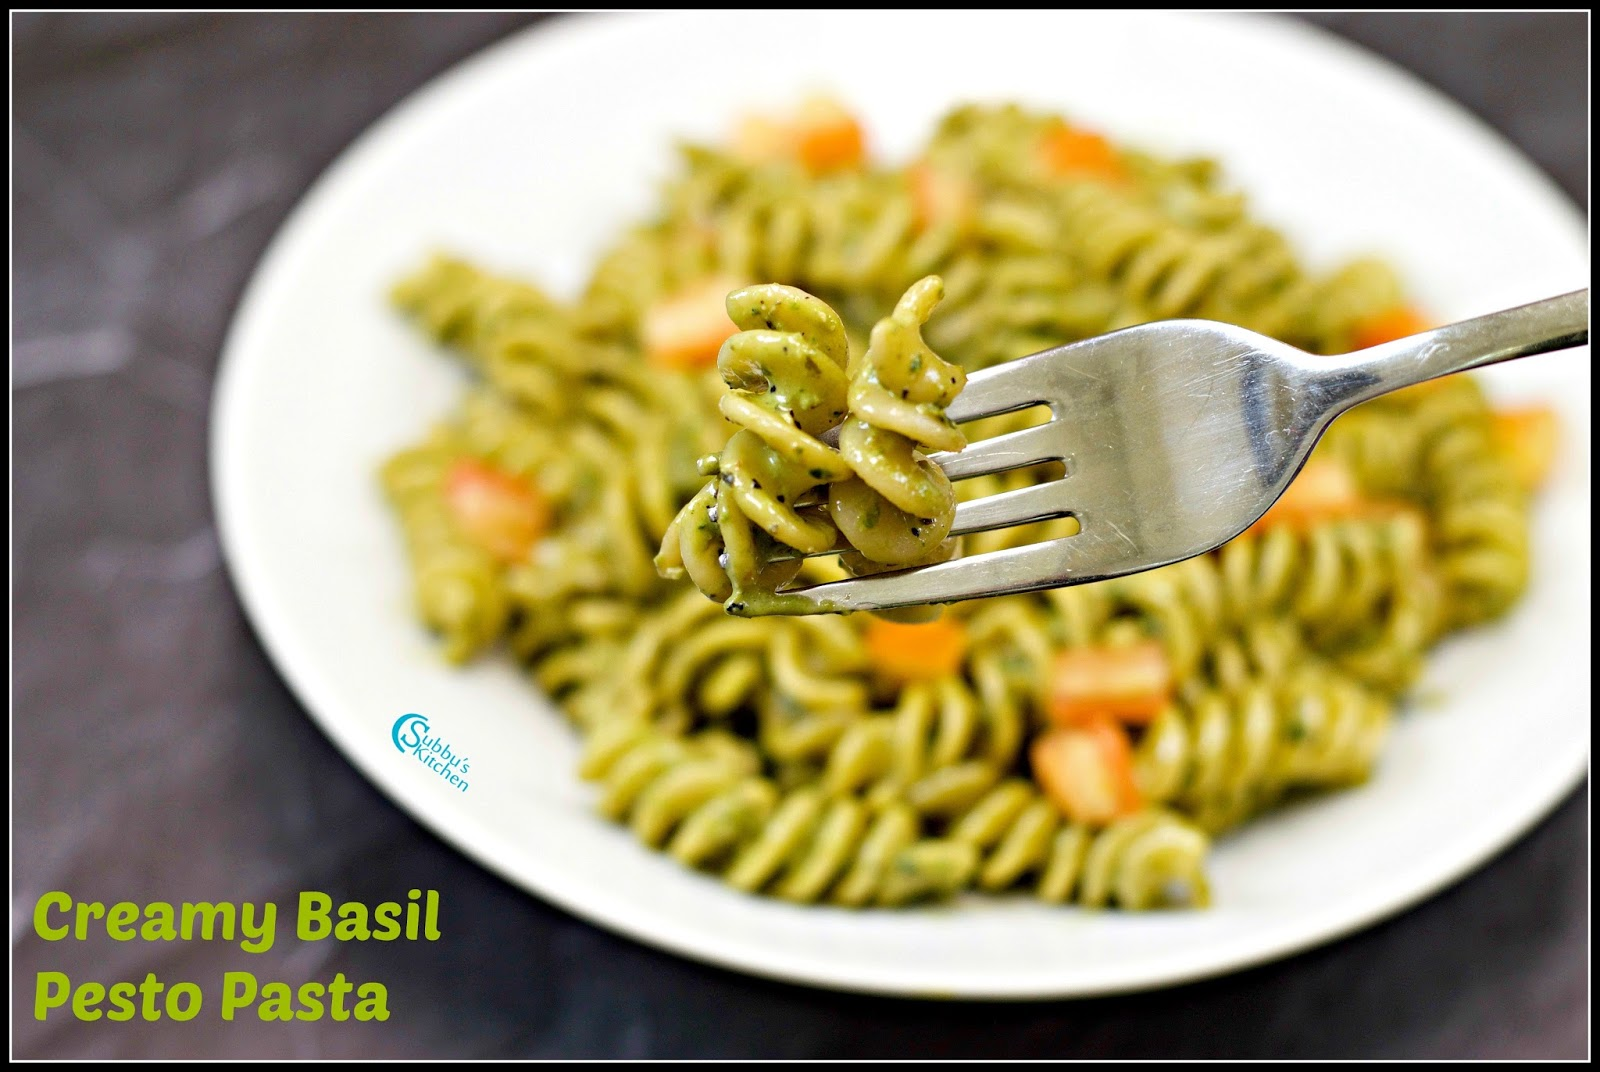 Creamy Basil Pesto Pasta Recipe | Pasta with Basil Pesto